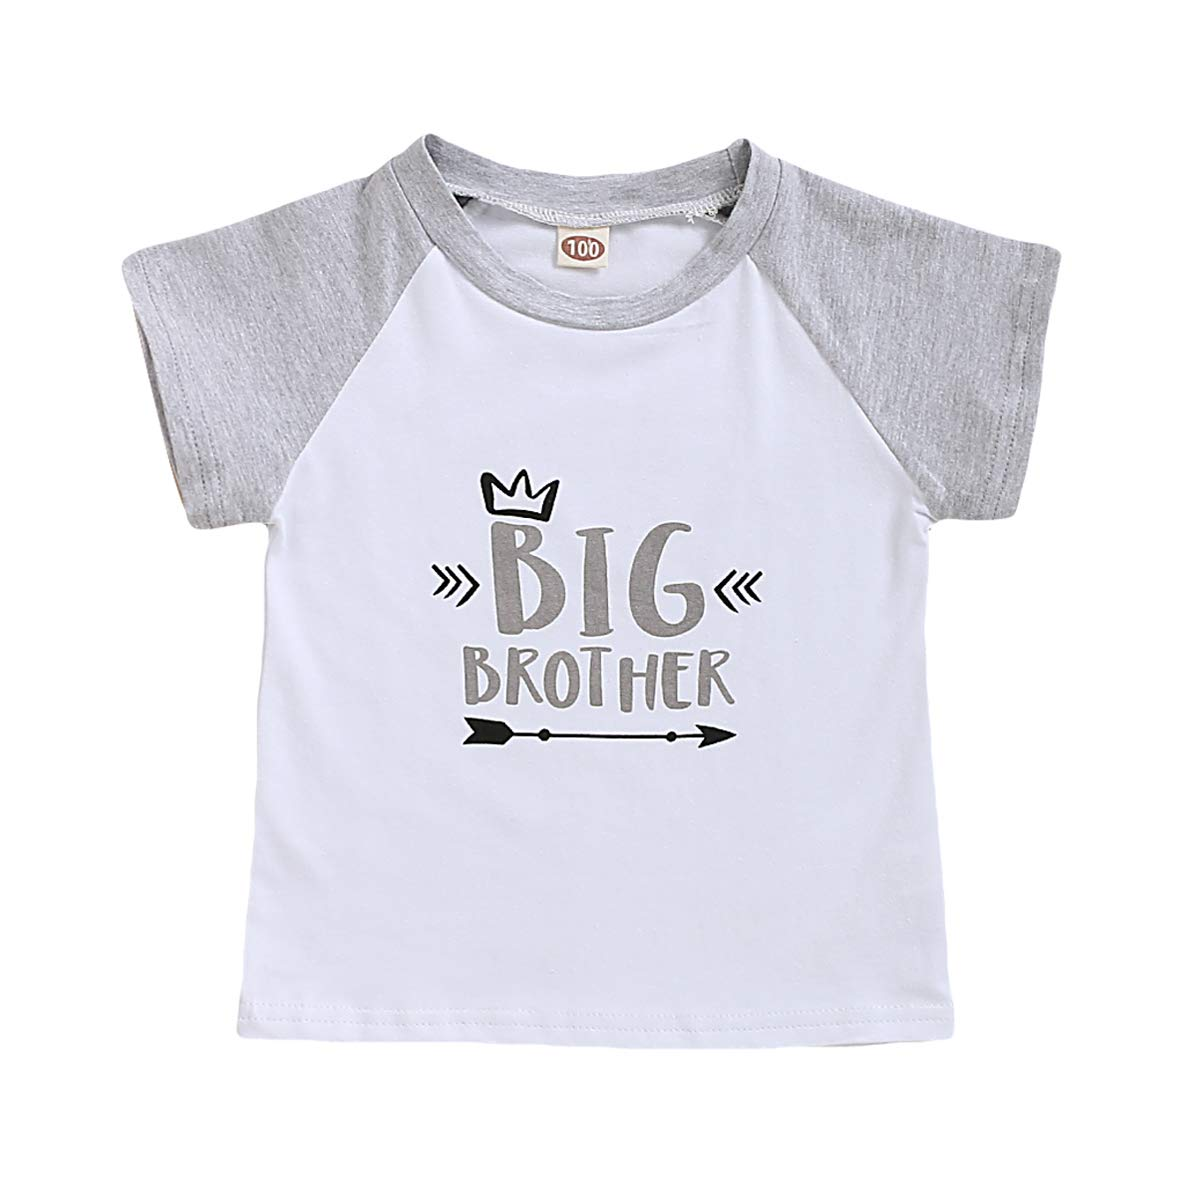 Big Brother Little Brother Matching Outfits Short Sleeve Letter T-Shirt Romper Siblings Set